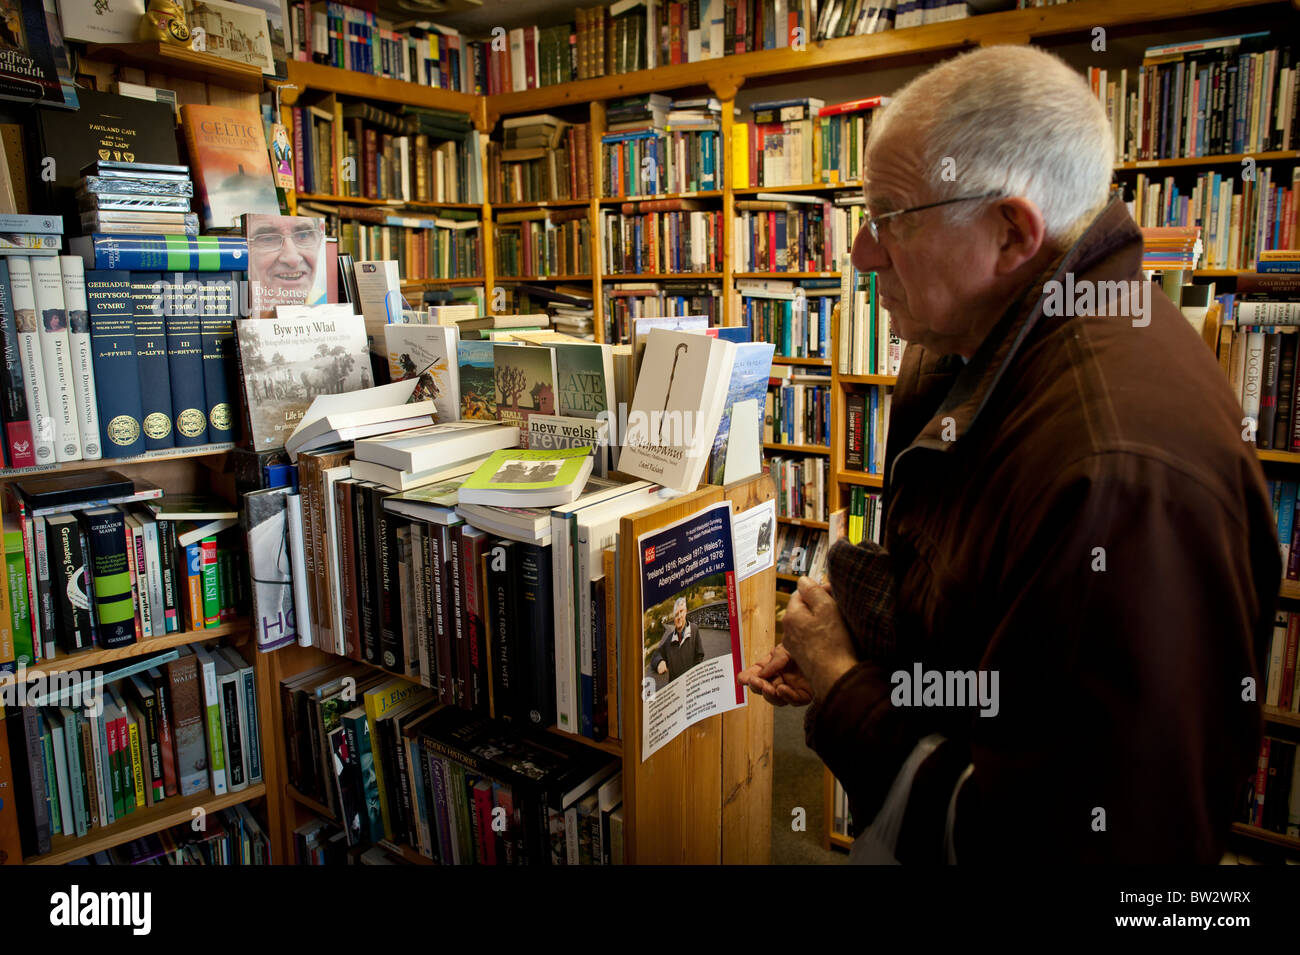 A man browsing welsh books in Ystwyth Books new and used independent bookshop, Aberystwyth Wales UK - Stock Image